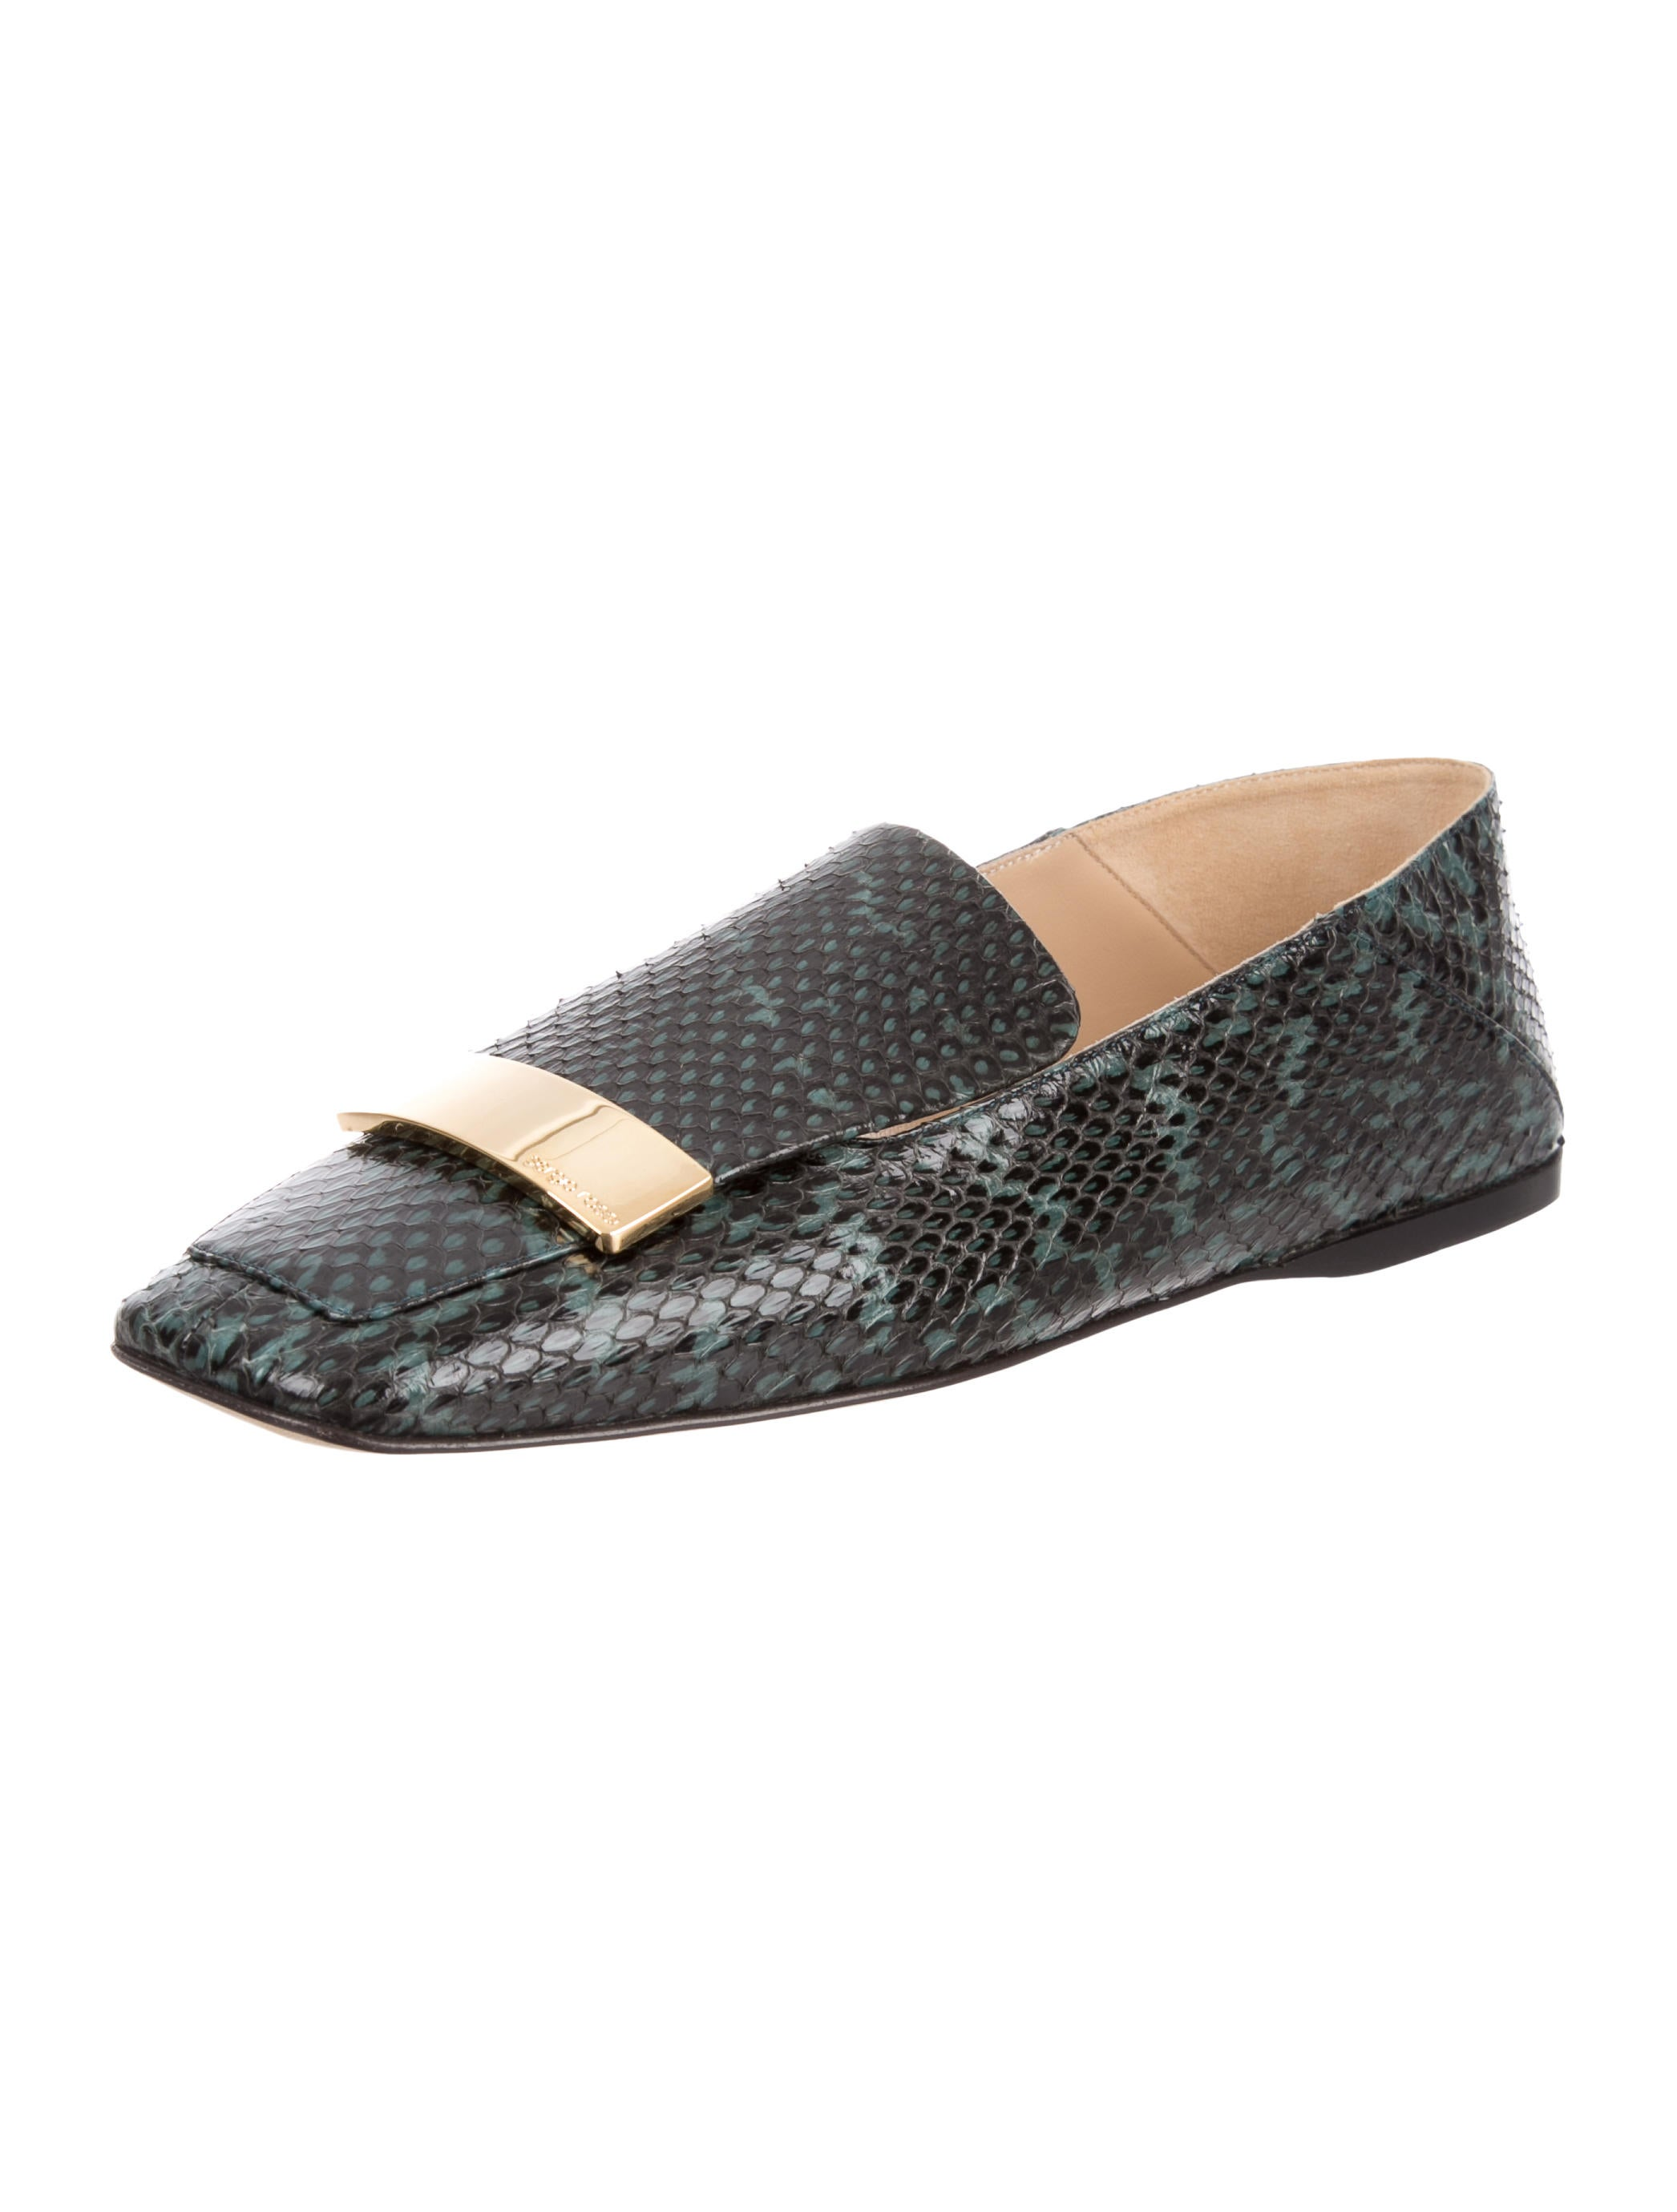 Sergio Rossi Sri Snakeskin Loafers w/ Tags sale cheap prices amazing price cheap price Nj3Yf6